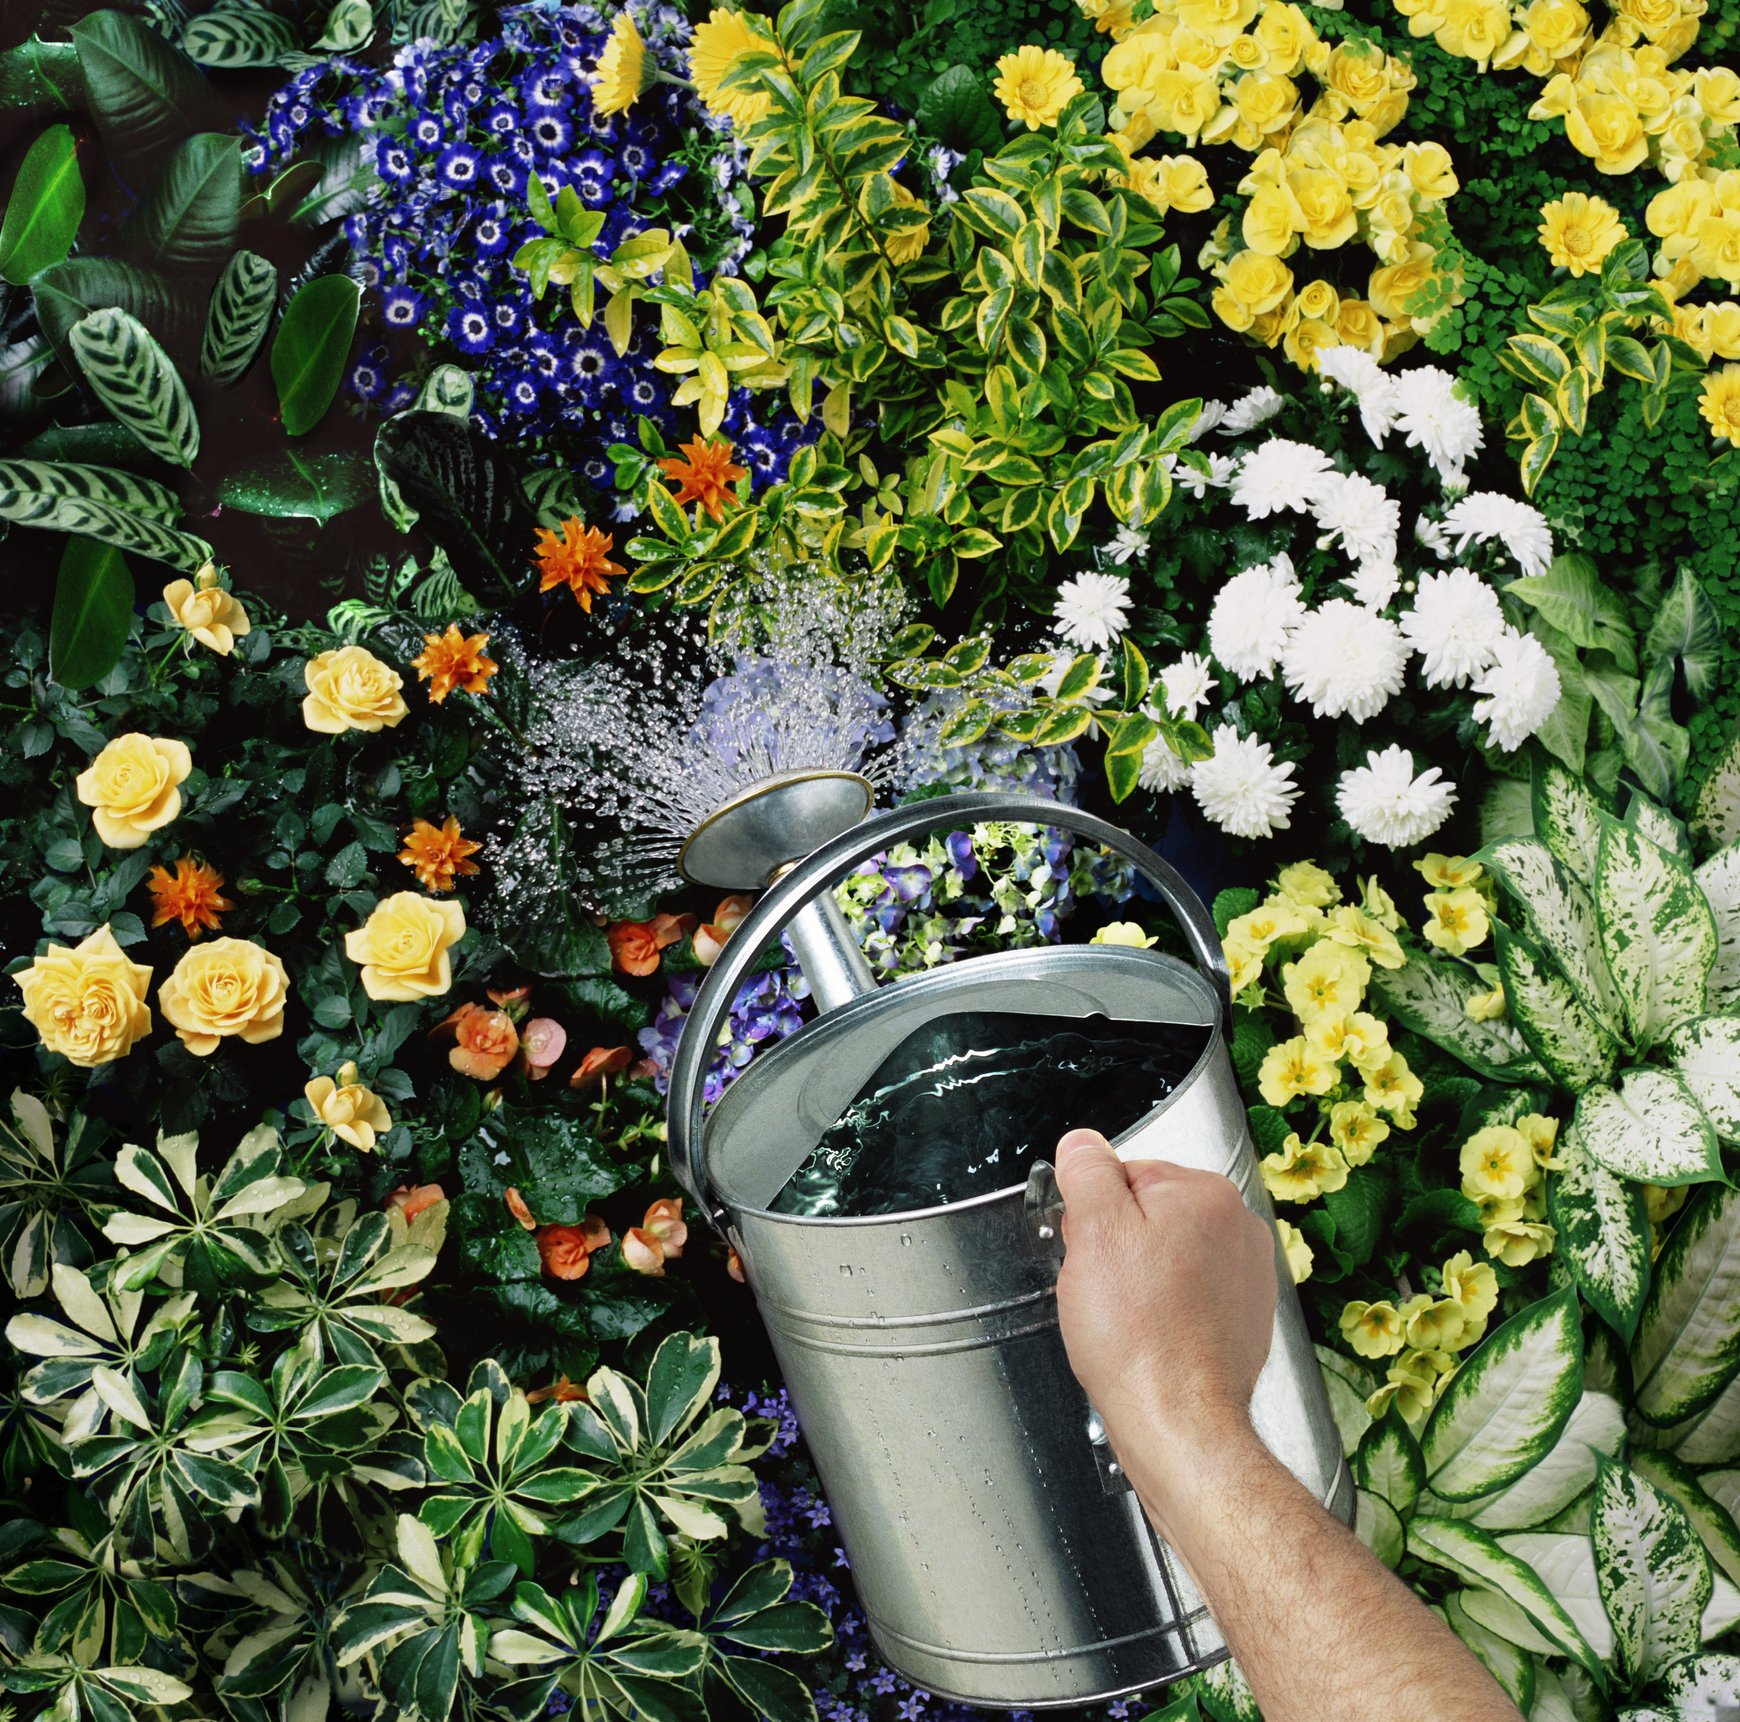 Man watering flowers, close-up of hand and watering can | Photo: Getty Images